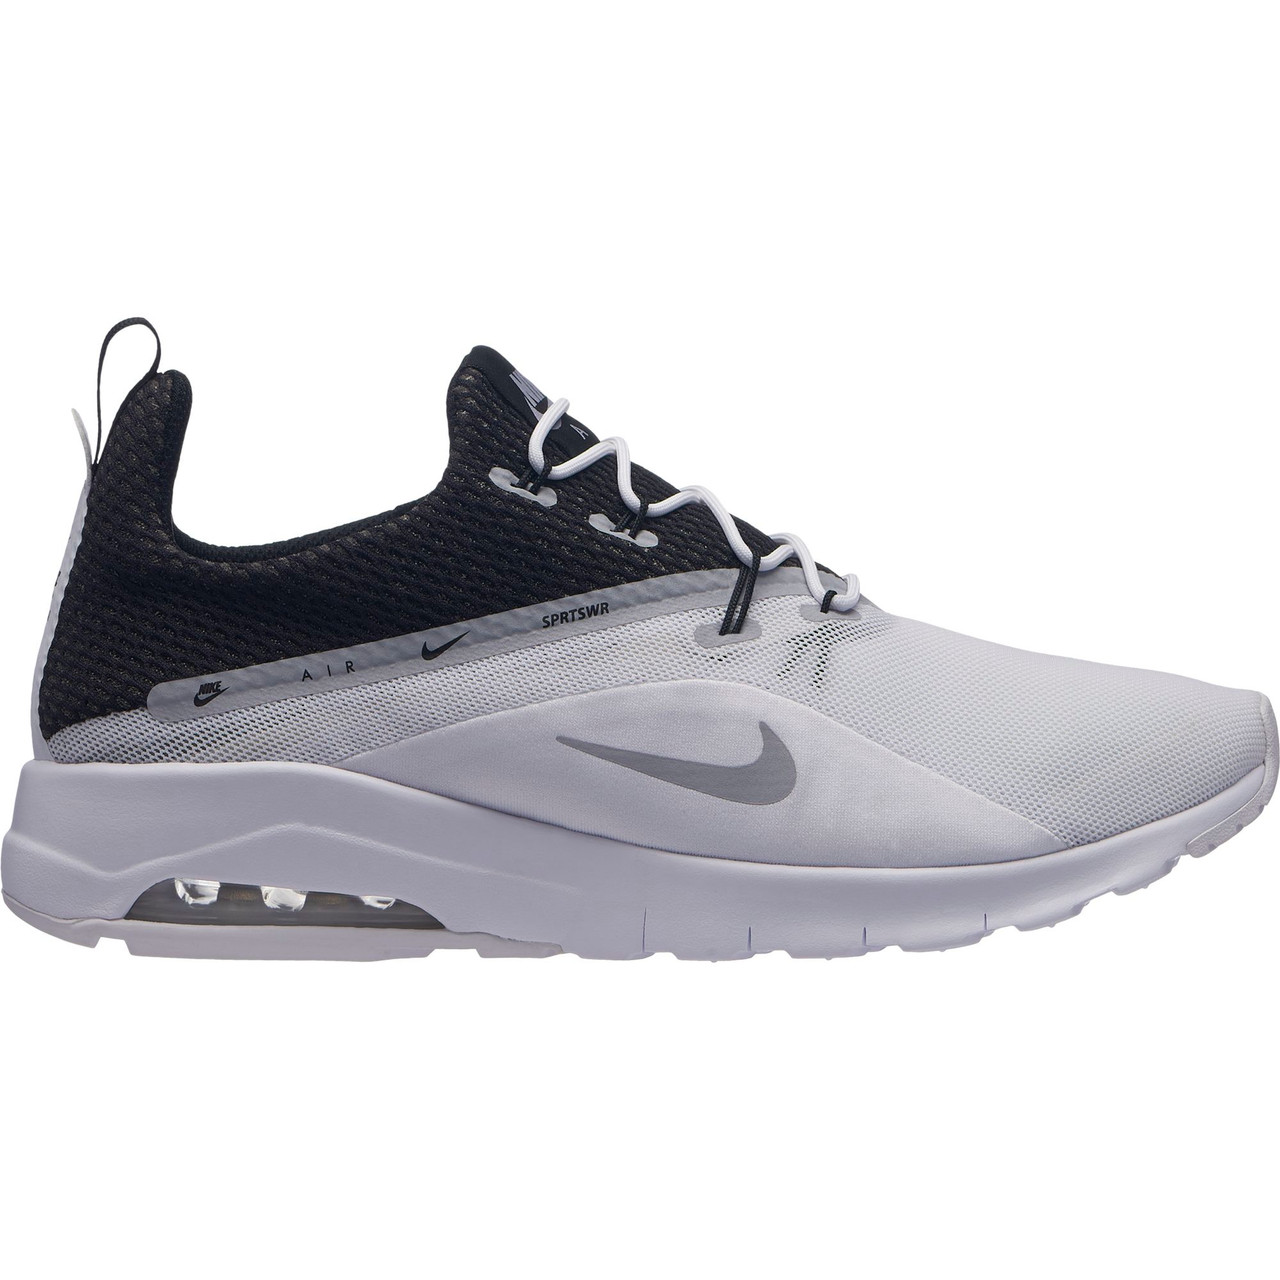 c80f58a175b Men s Nike Air Max Motion Racer 2 Running Shoe - Sieverts Sporting Goods